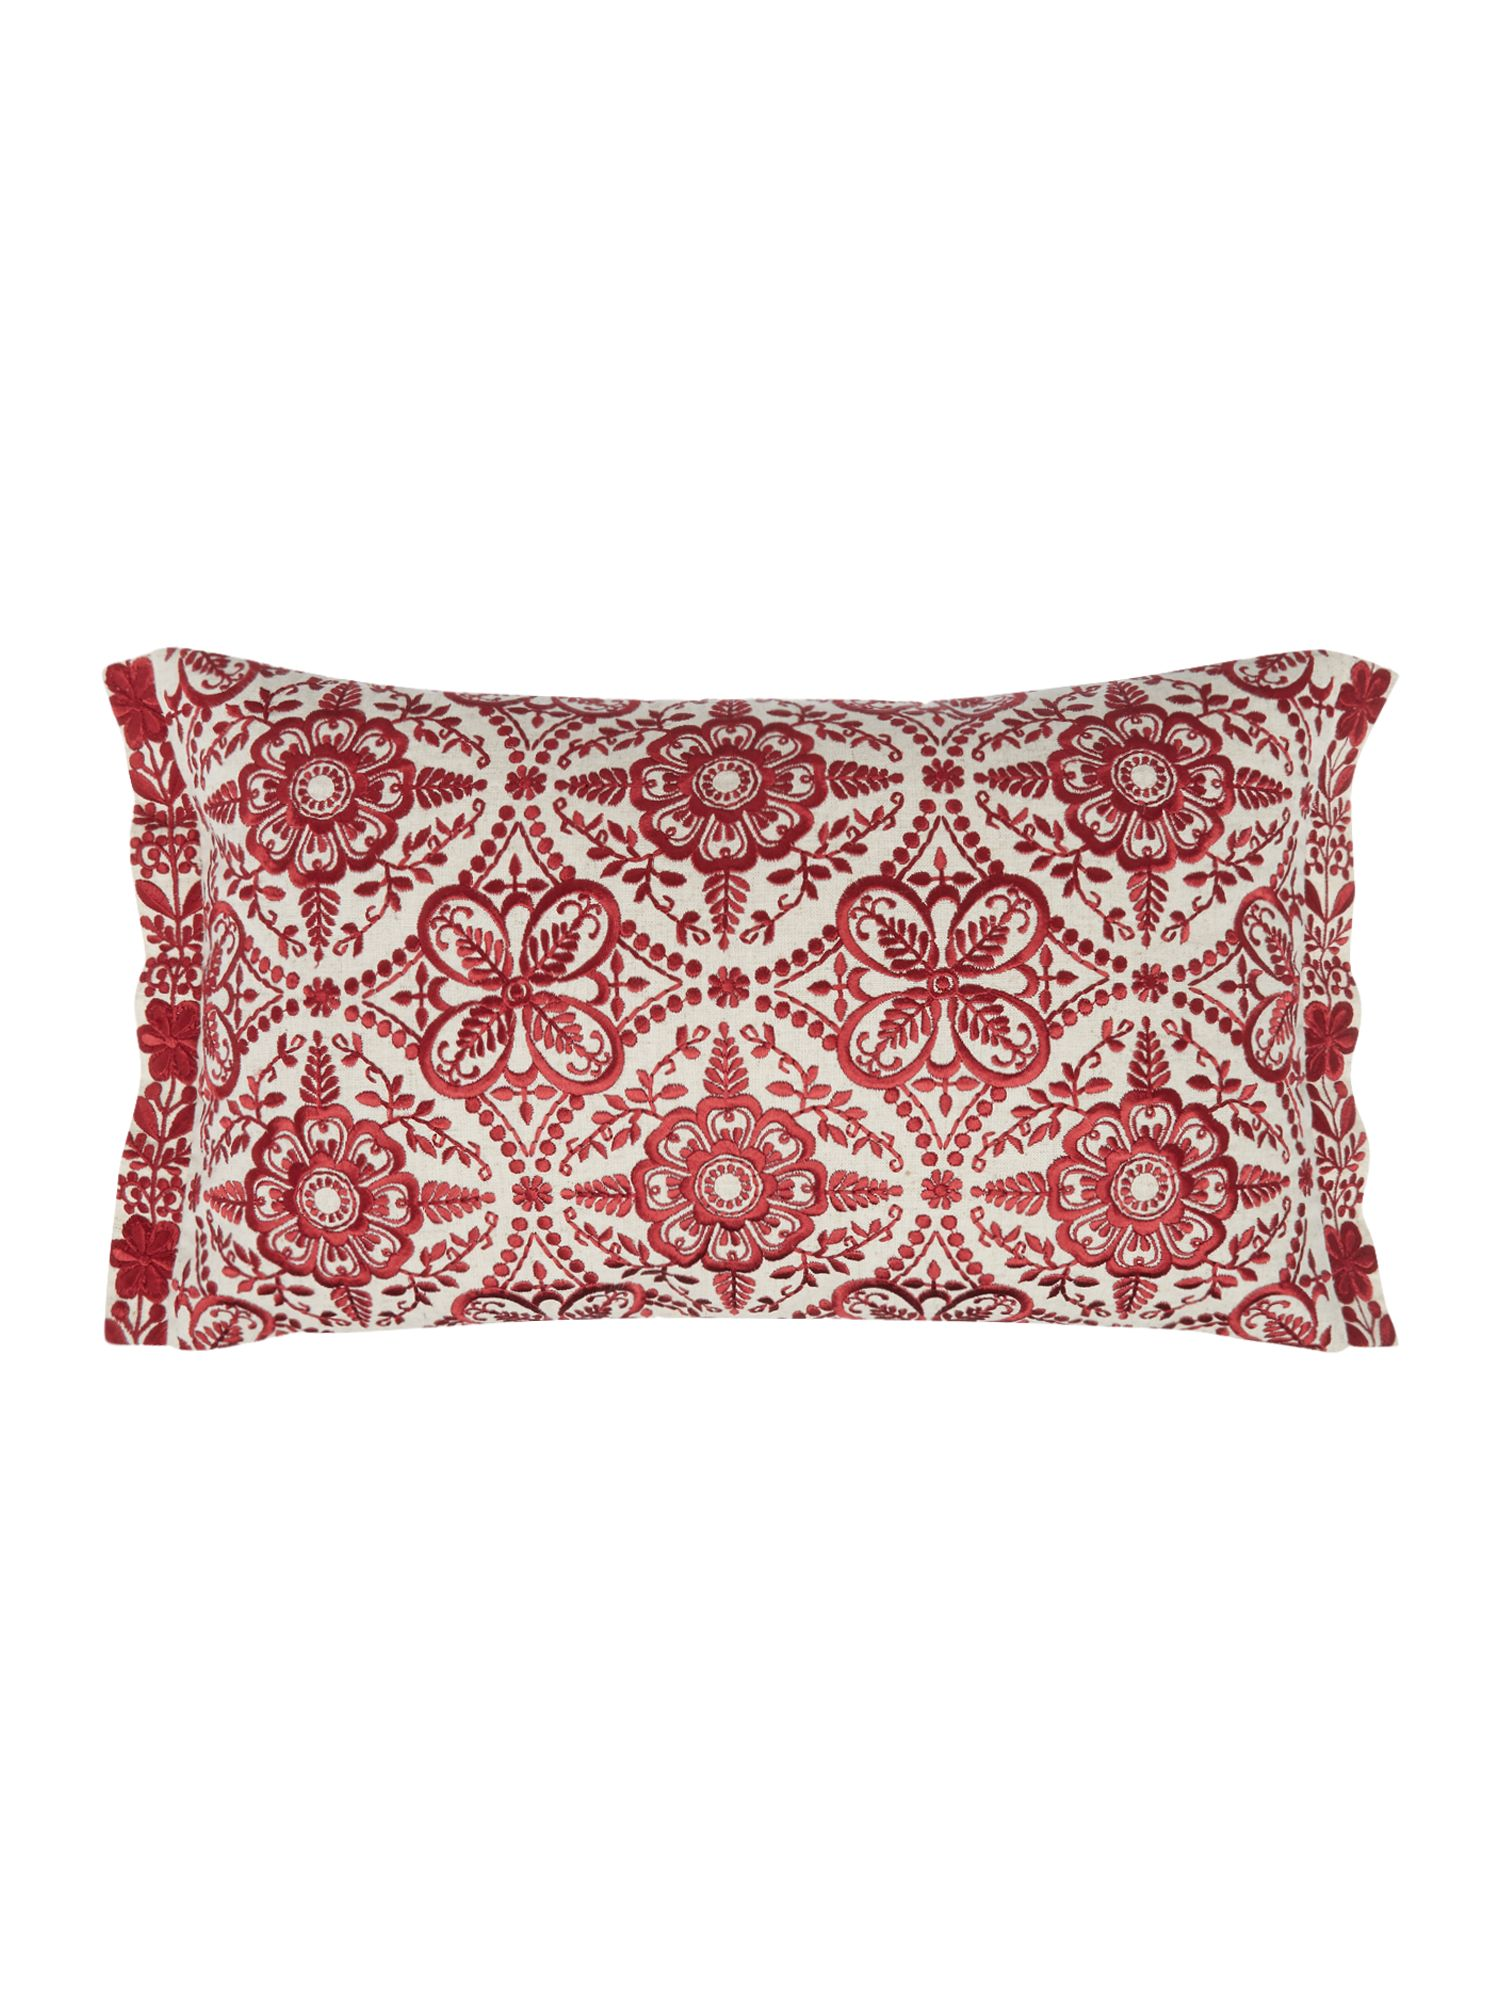 house of fraser linea sofa review stylish beds sydney embroidered linen cushions